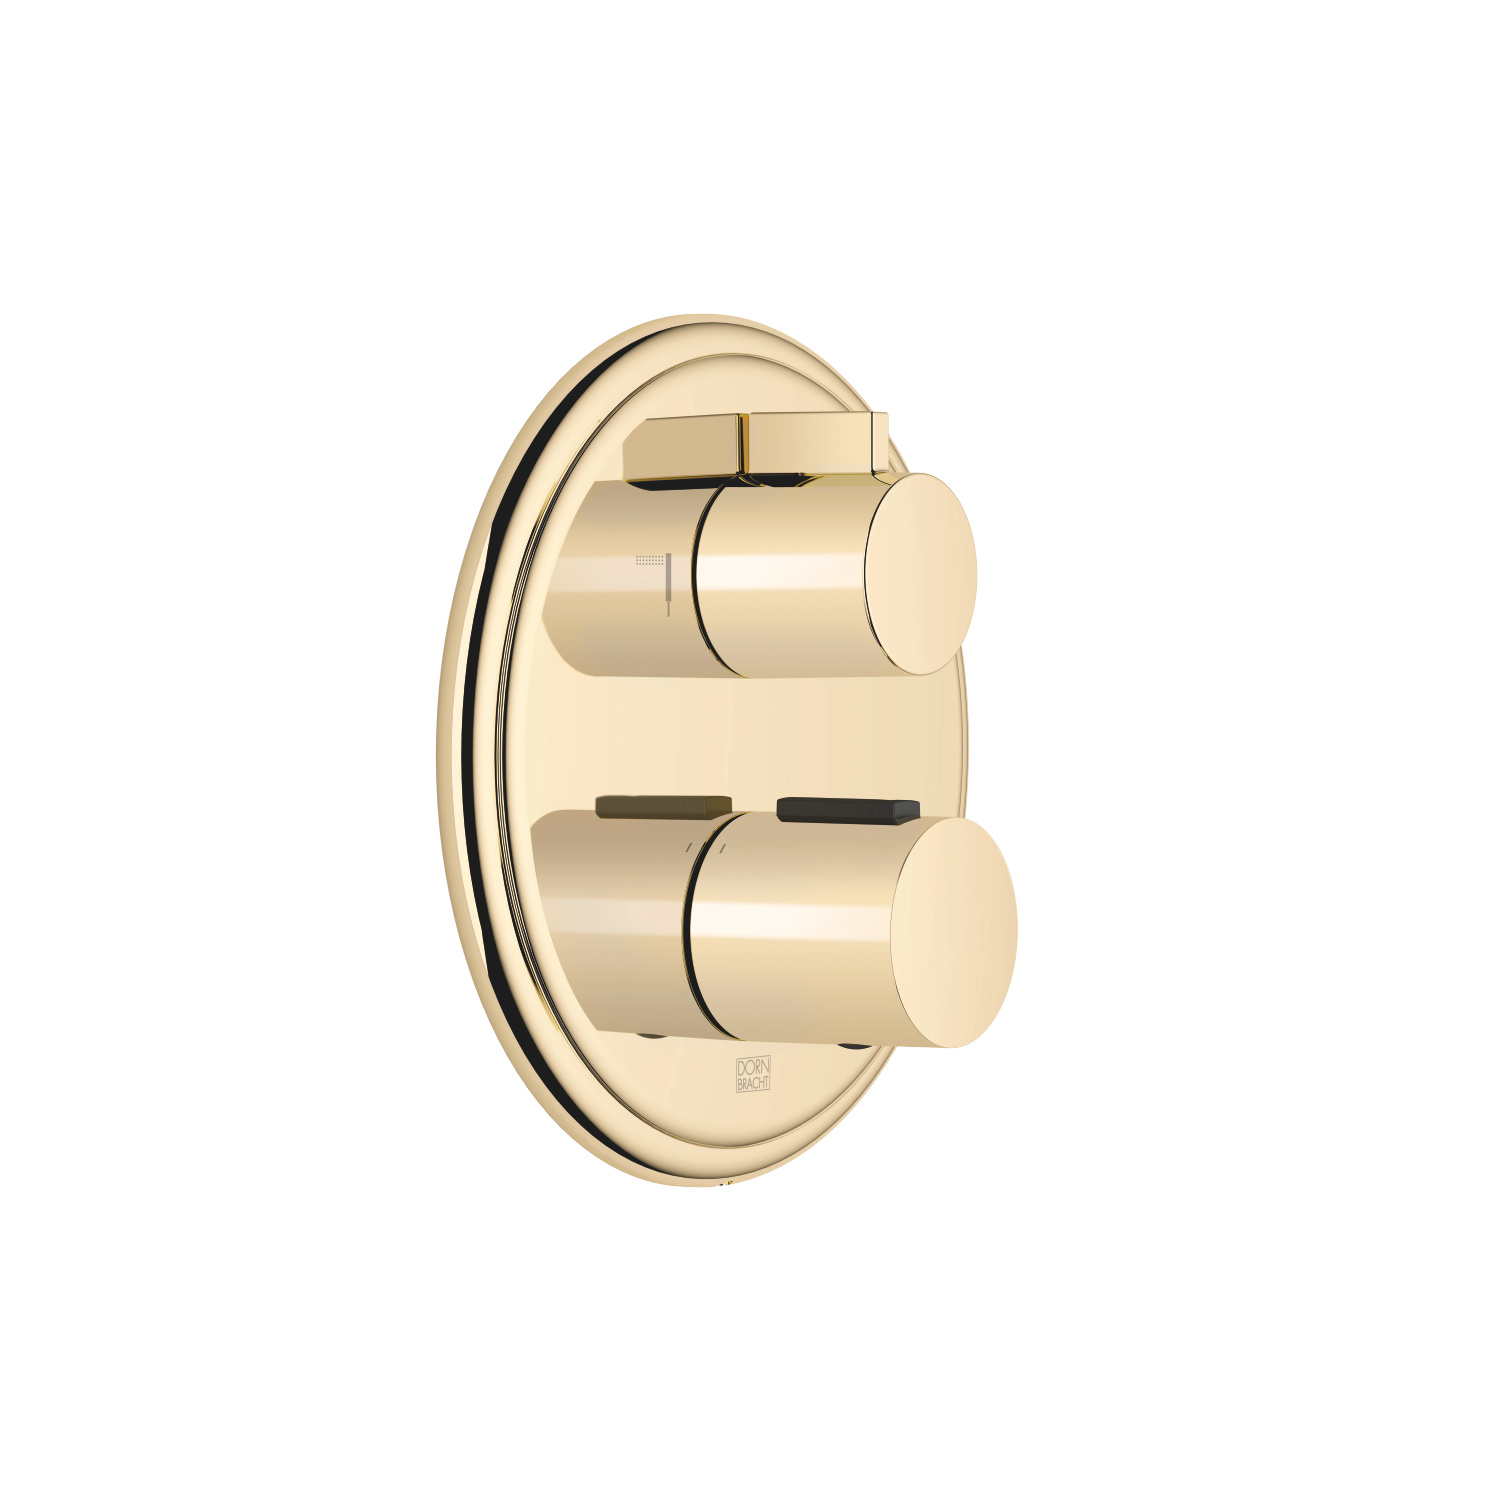 Concealed thermostat with two function volume control - Durabrass